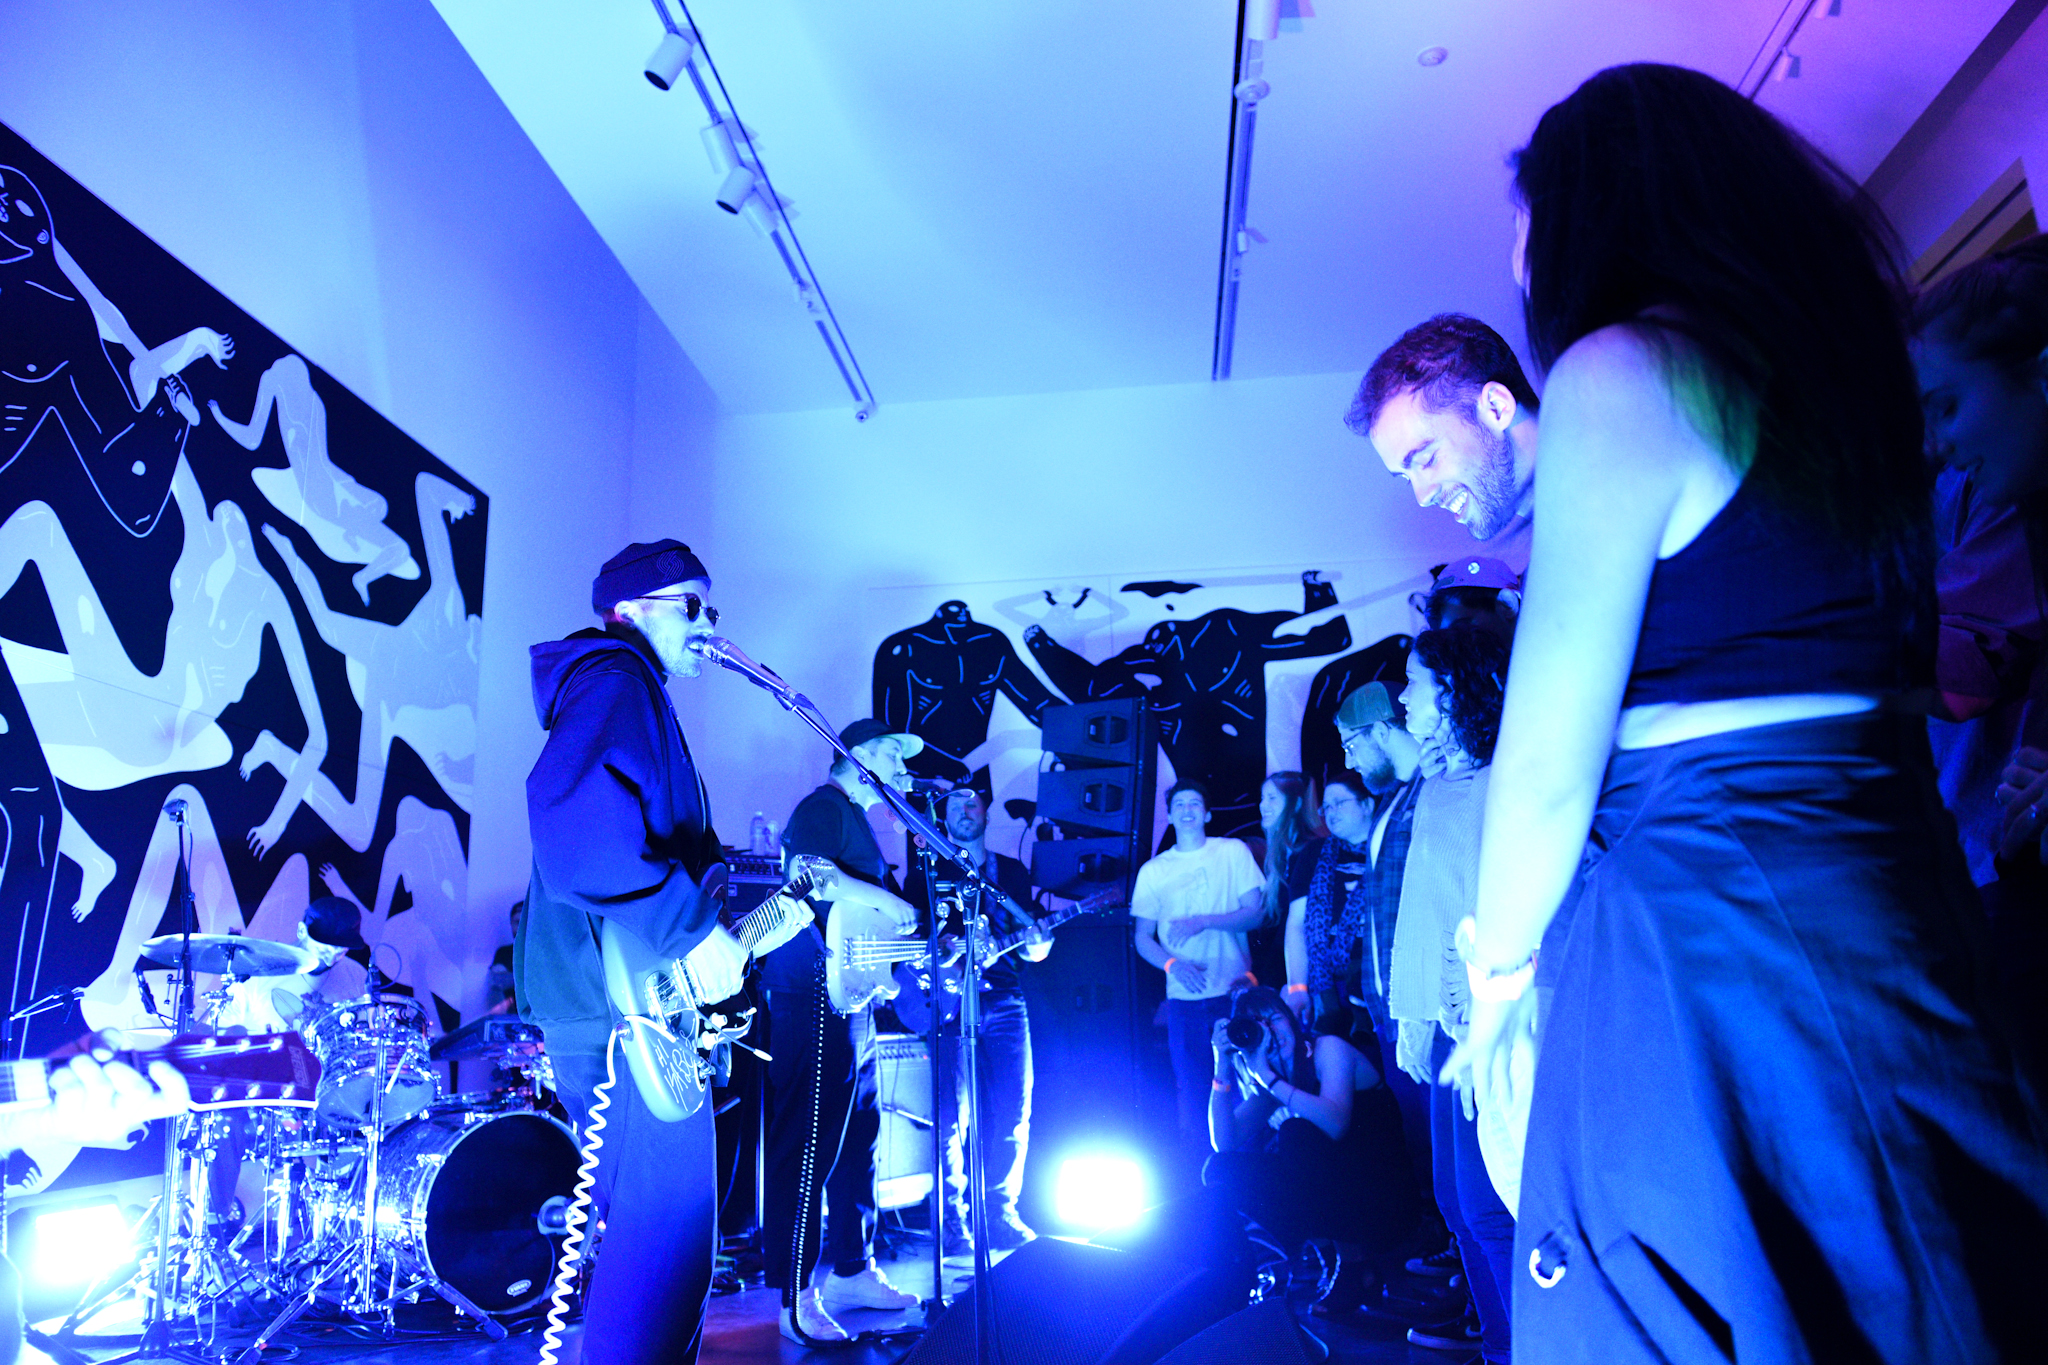 03162018_bruce_mca portugal the man cleon peterson_0038.jpg